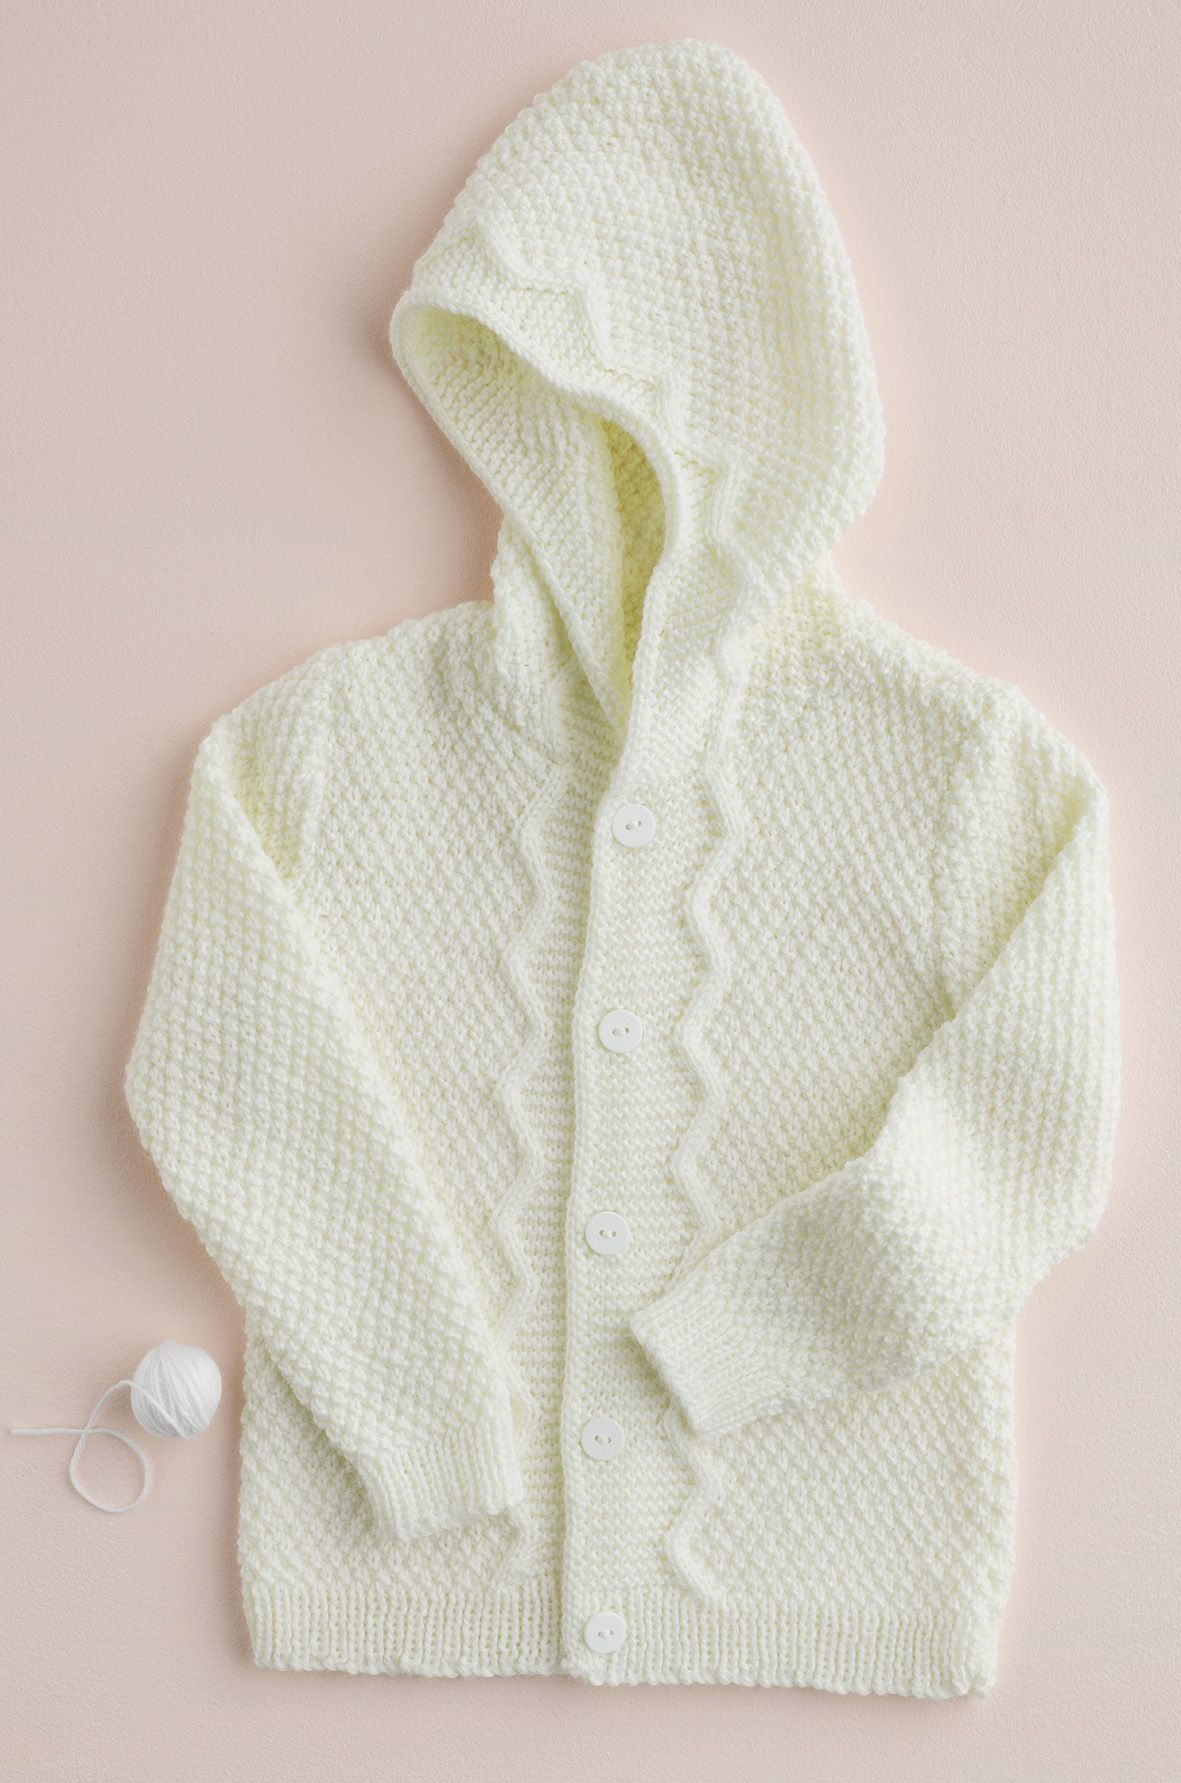 Knitted baby hoodie by Patons Australia | new from acs | Pinterest